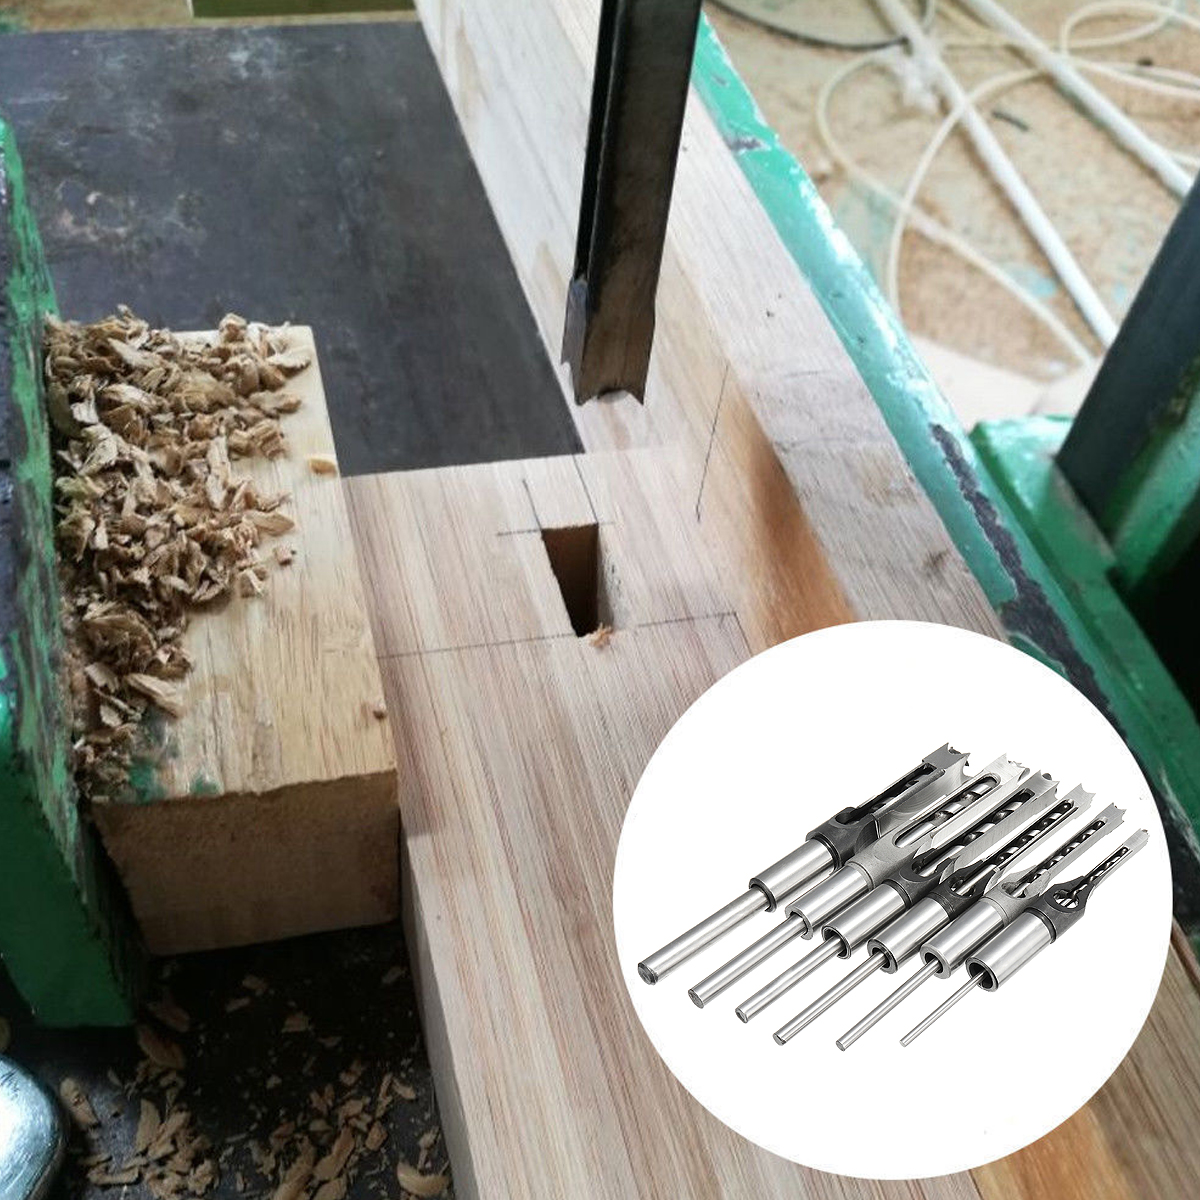 6pcs 6-16mm Woodworking Square Hole Drill Bit Set Mortising Chisel Auger Drill 6/8/9.5/12.7/14/16mm